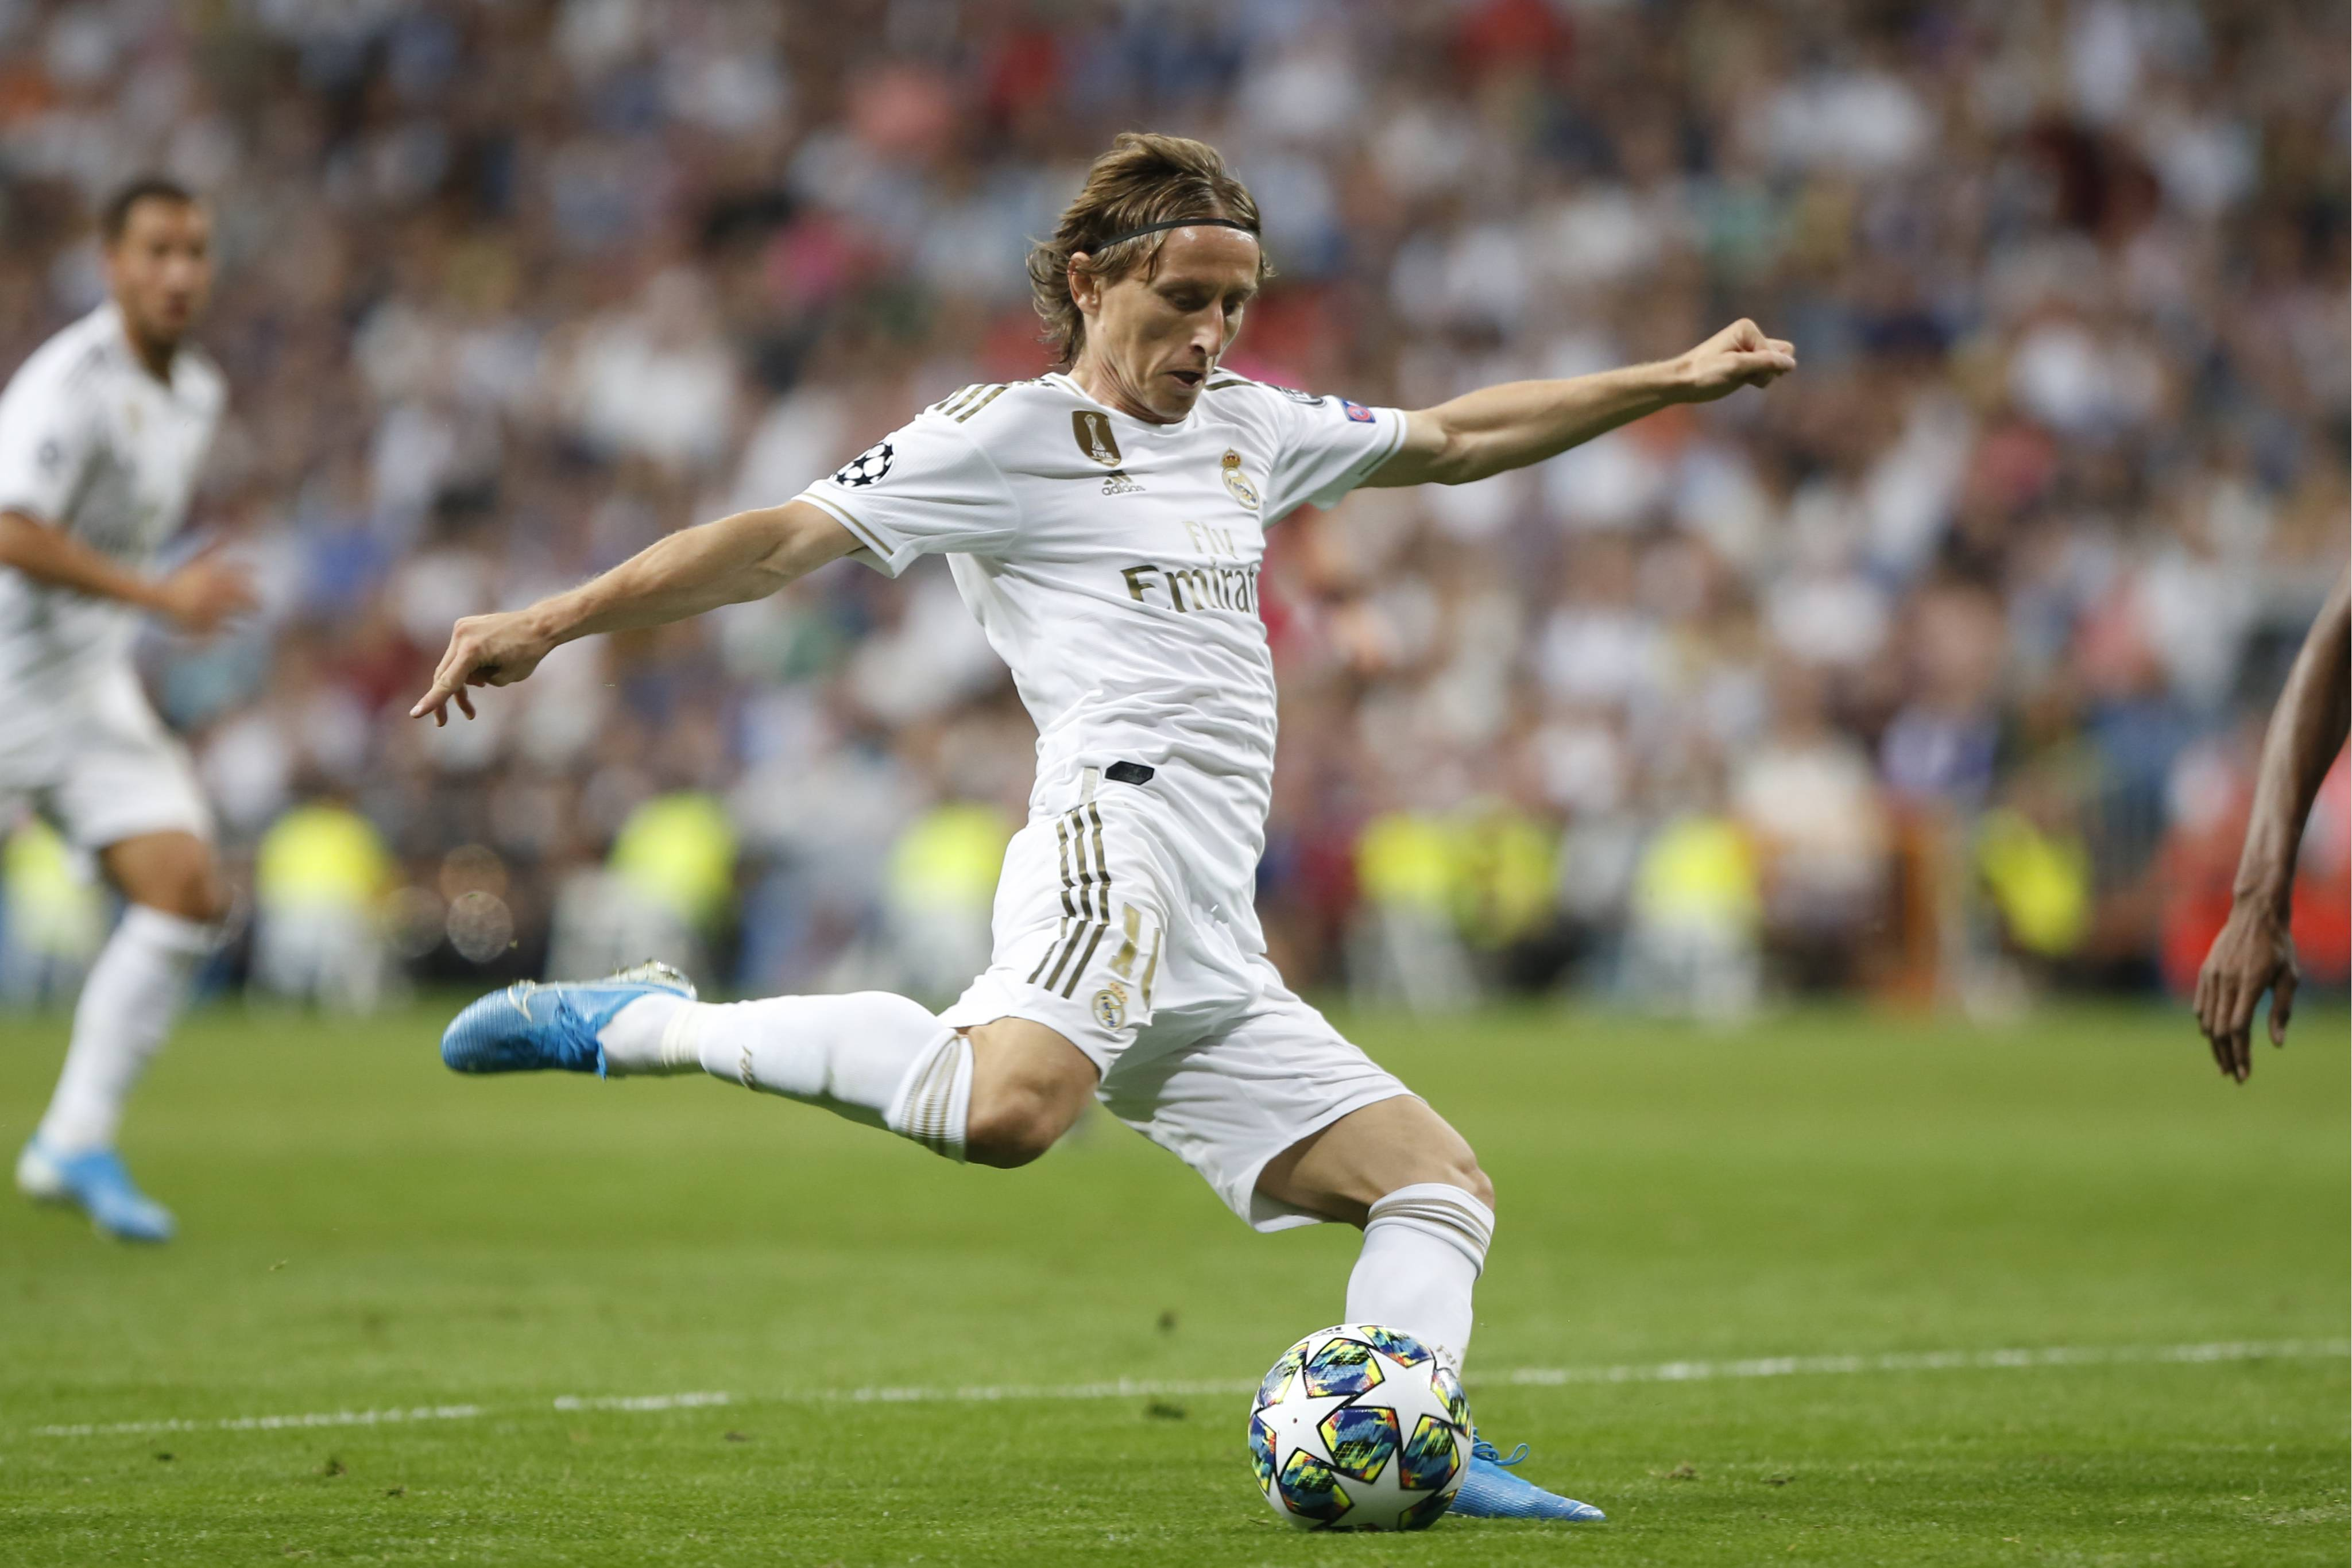 AC Milan could land weakened Real Madrid star Luka Modric on a free transfer